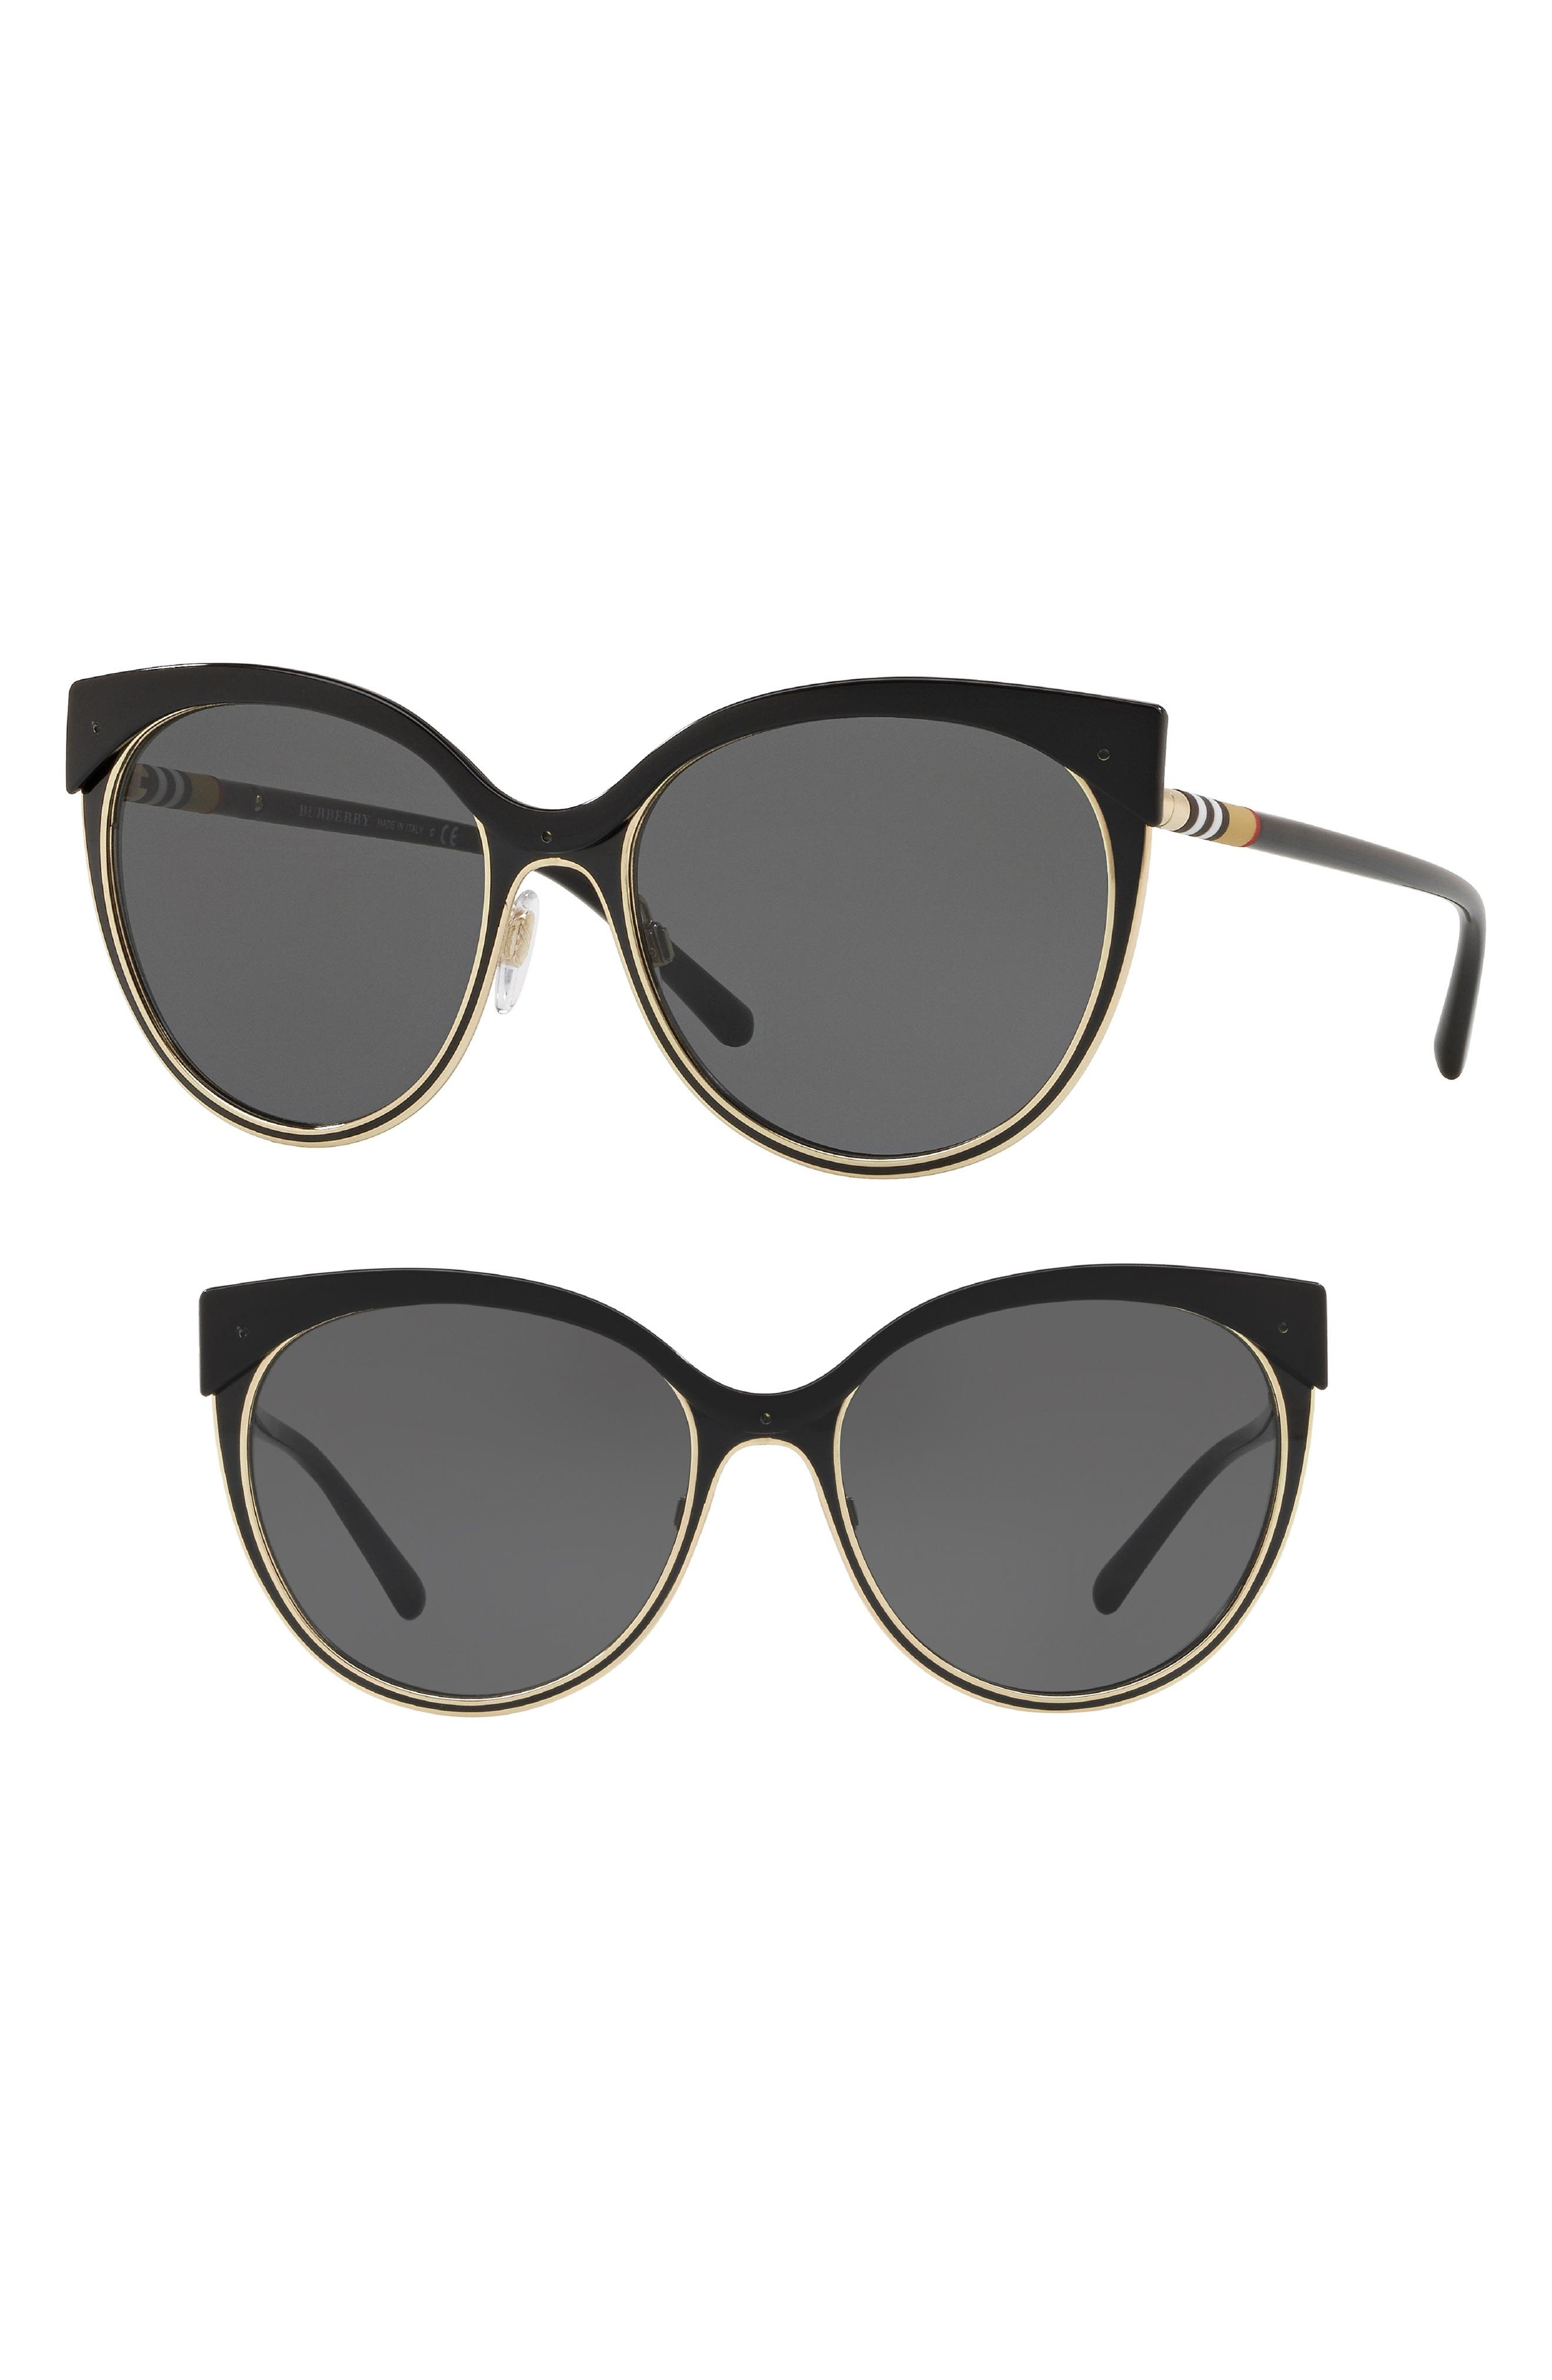 80a1bcc4e2f Burberry Heritage 55Mm Cat Eye Sunglasses - Gold  Black Solid In Gray Black